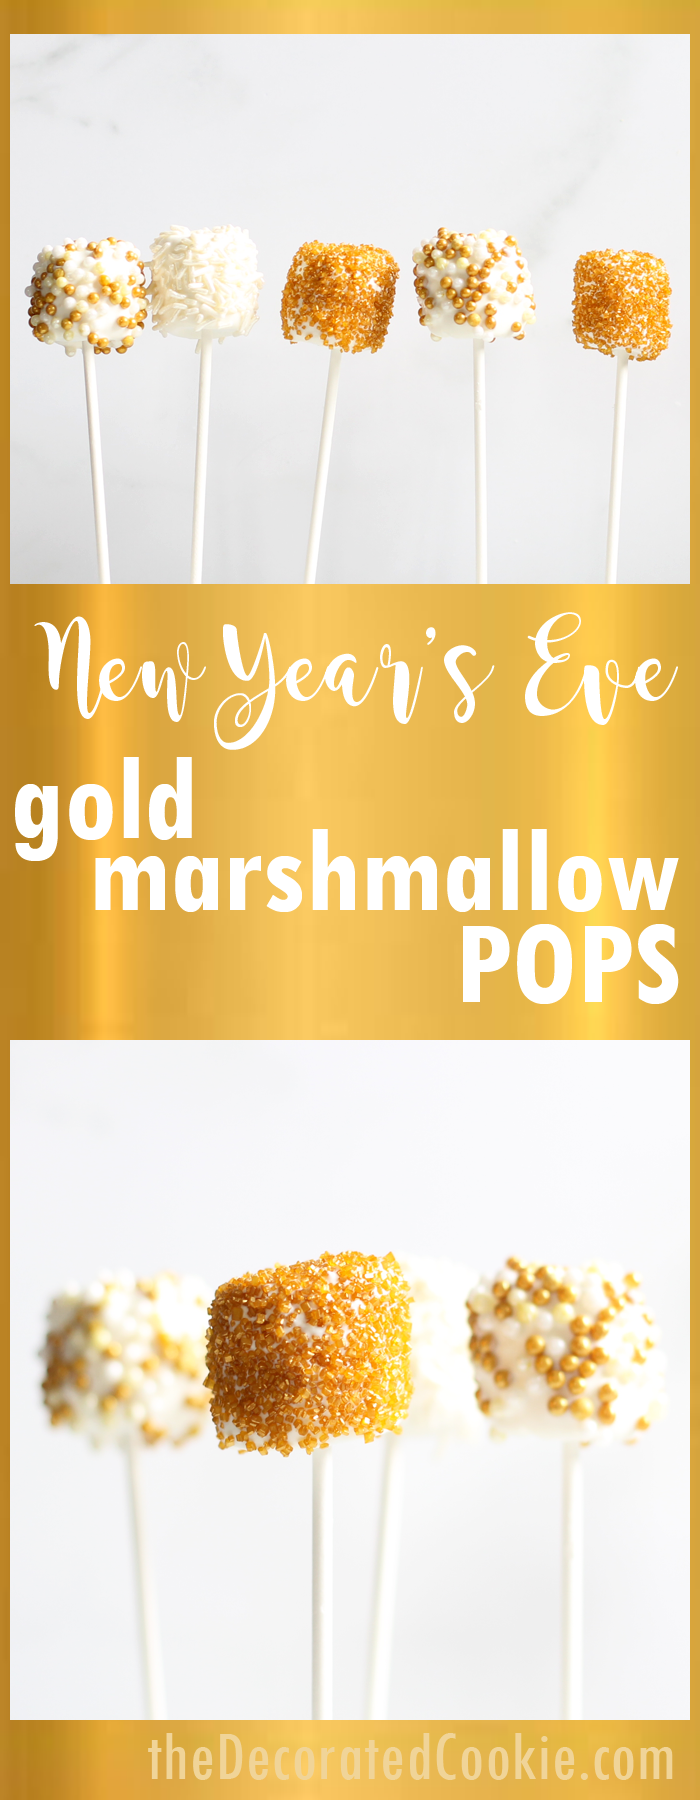 New year's eve marshmallows-- Sparkly gold marshmallow pops #newyearsevefood